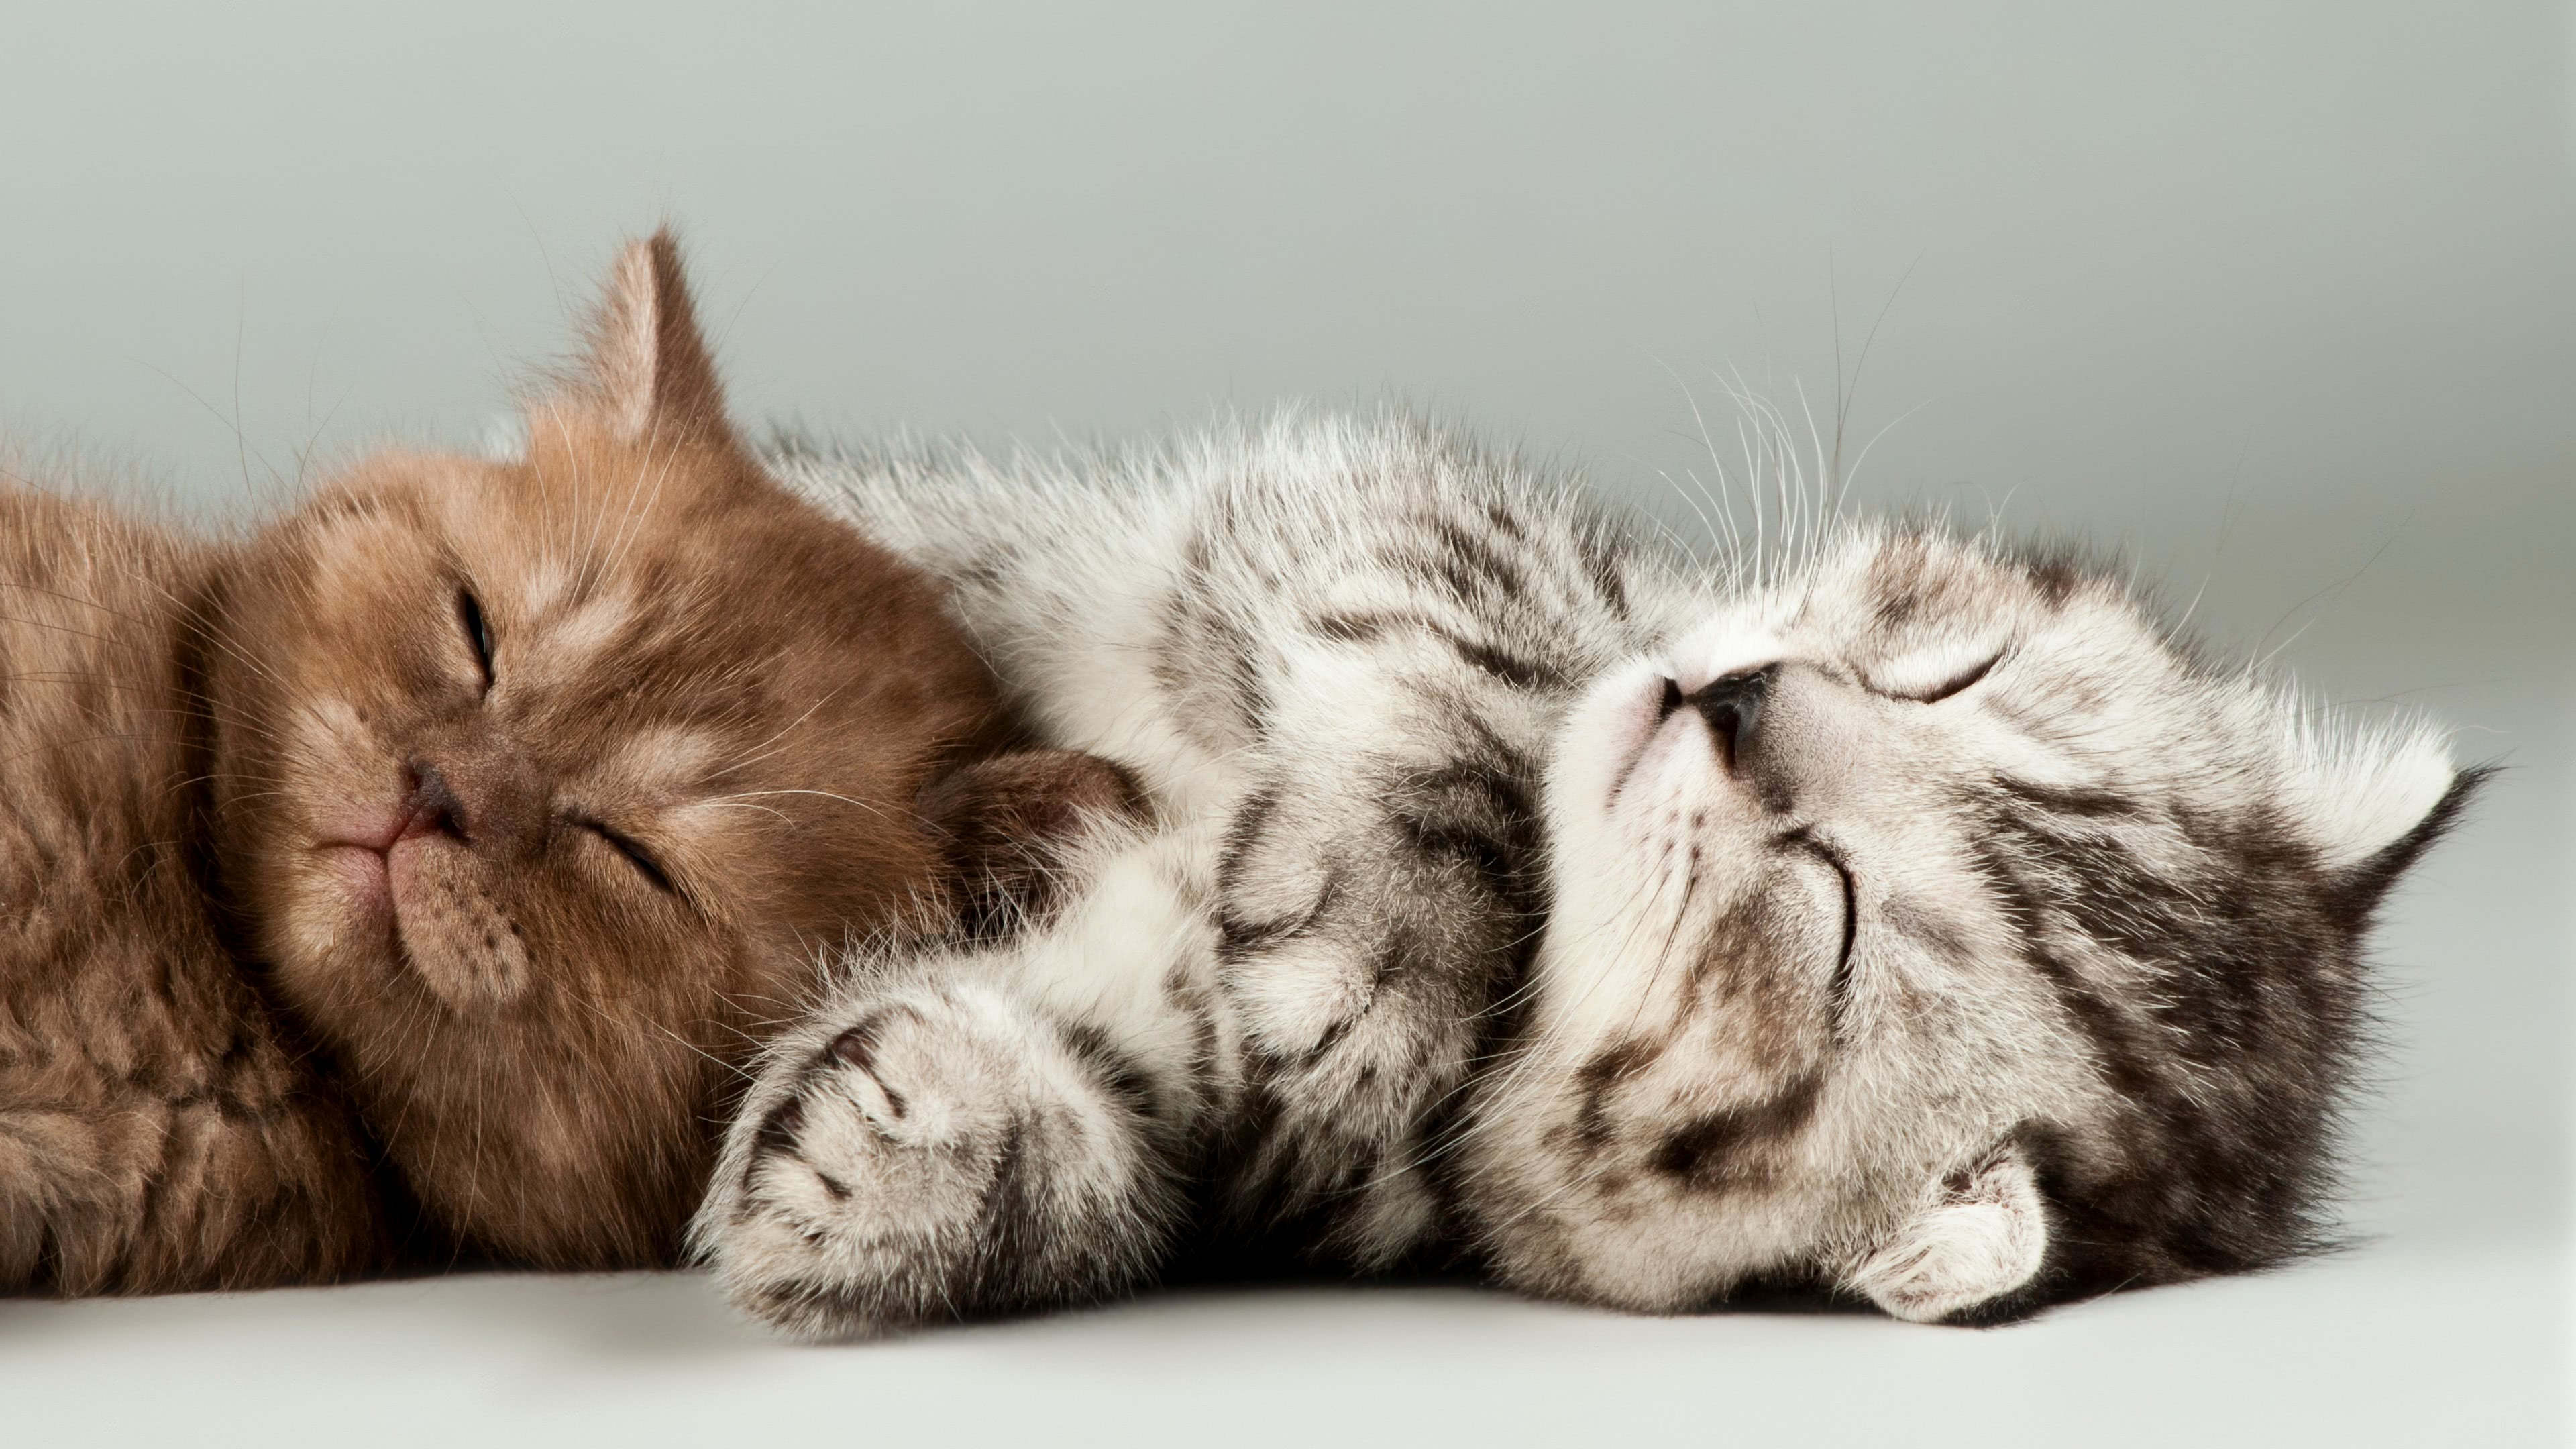 kittens sleeping uhd 4k wallpaper